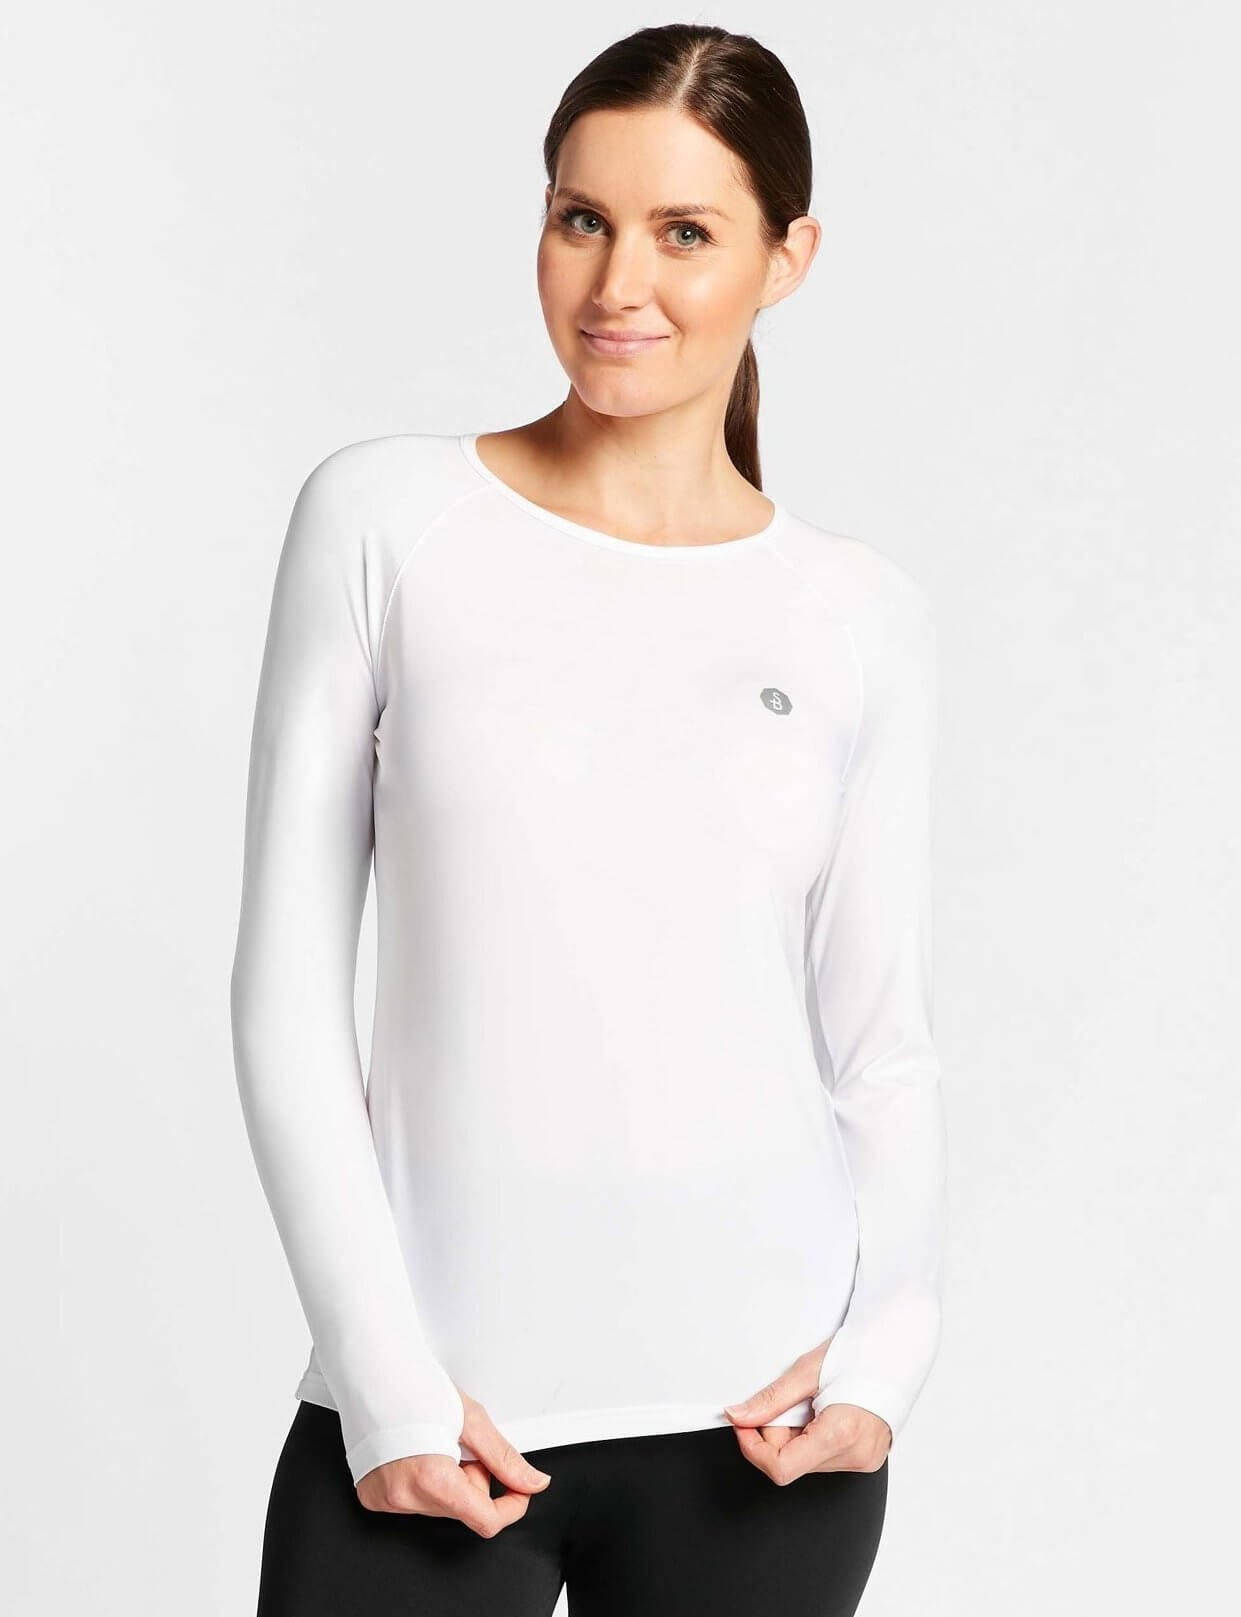 Solbari UPF 50+ Sun Protection White Base Layer for Women